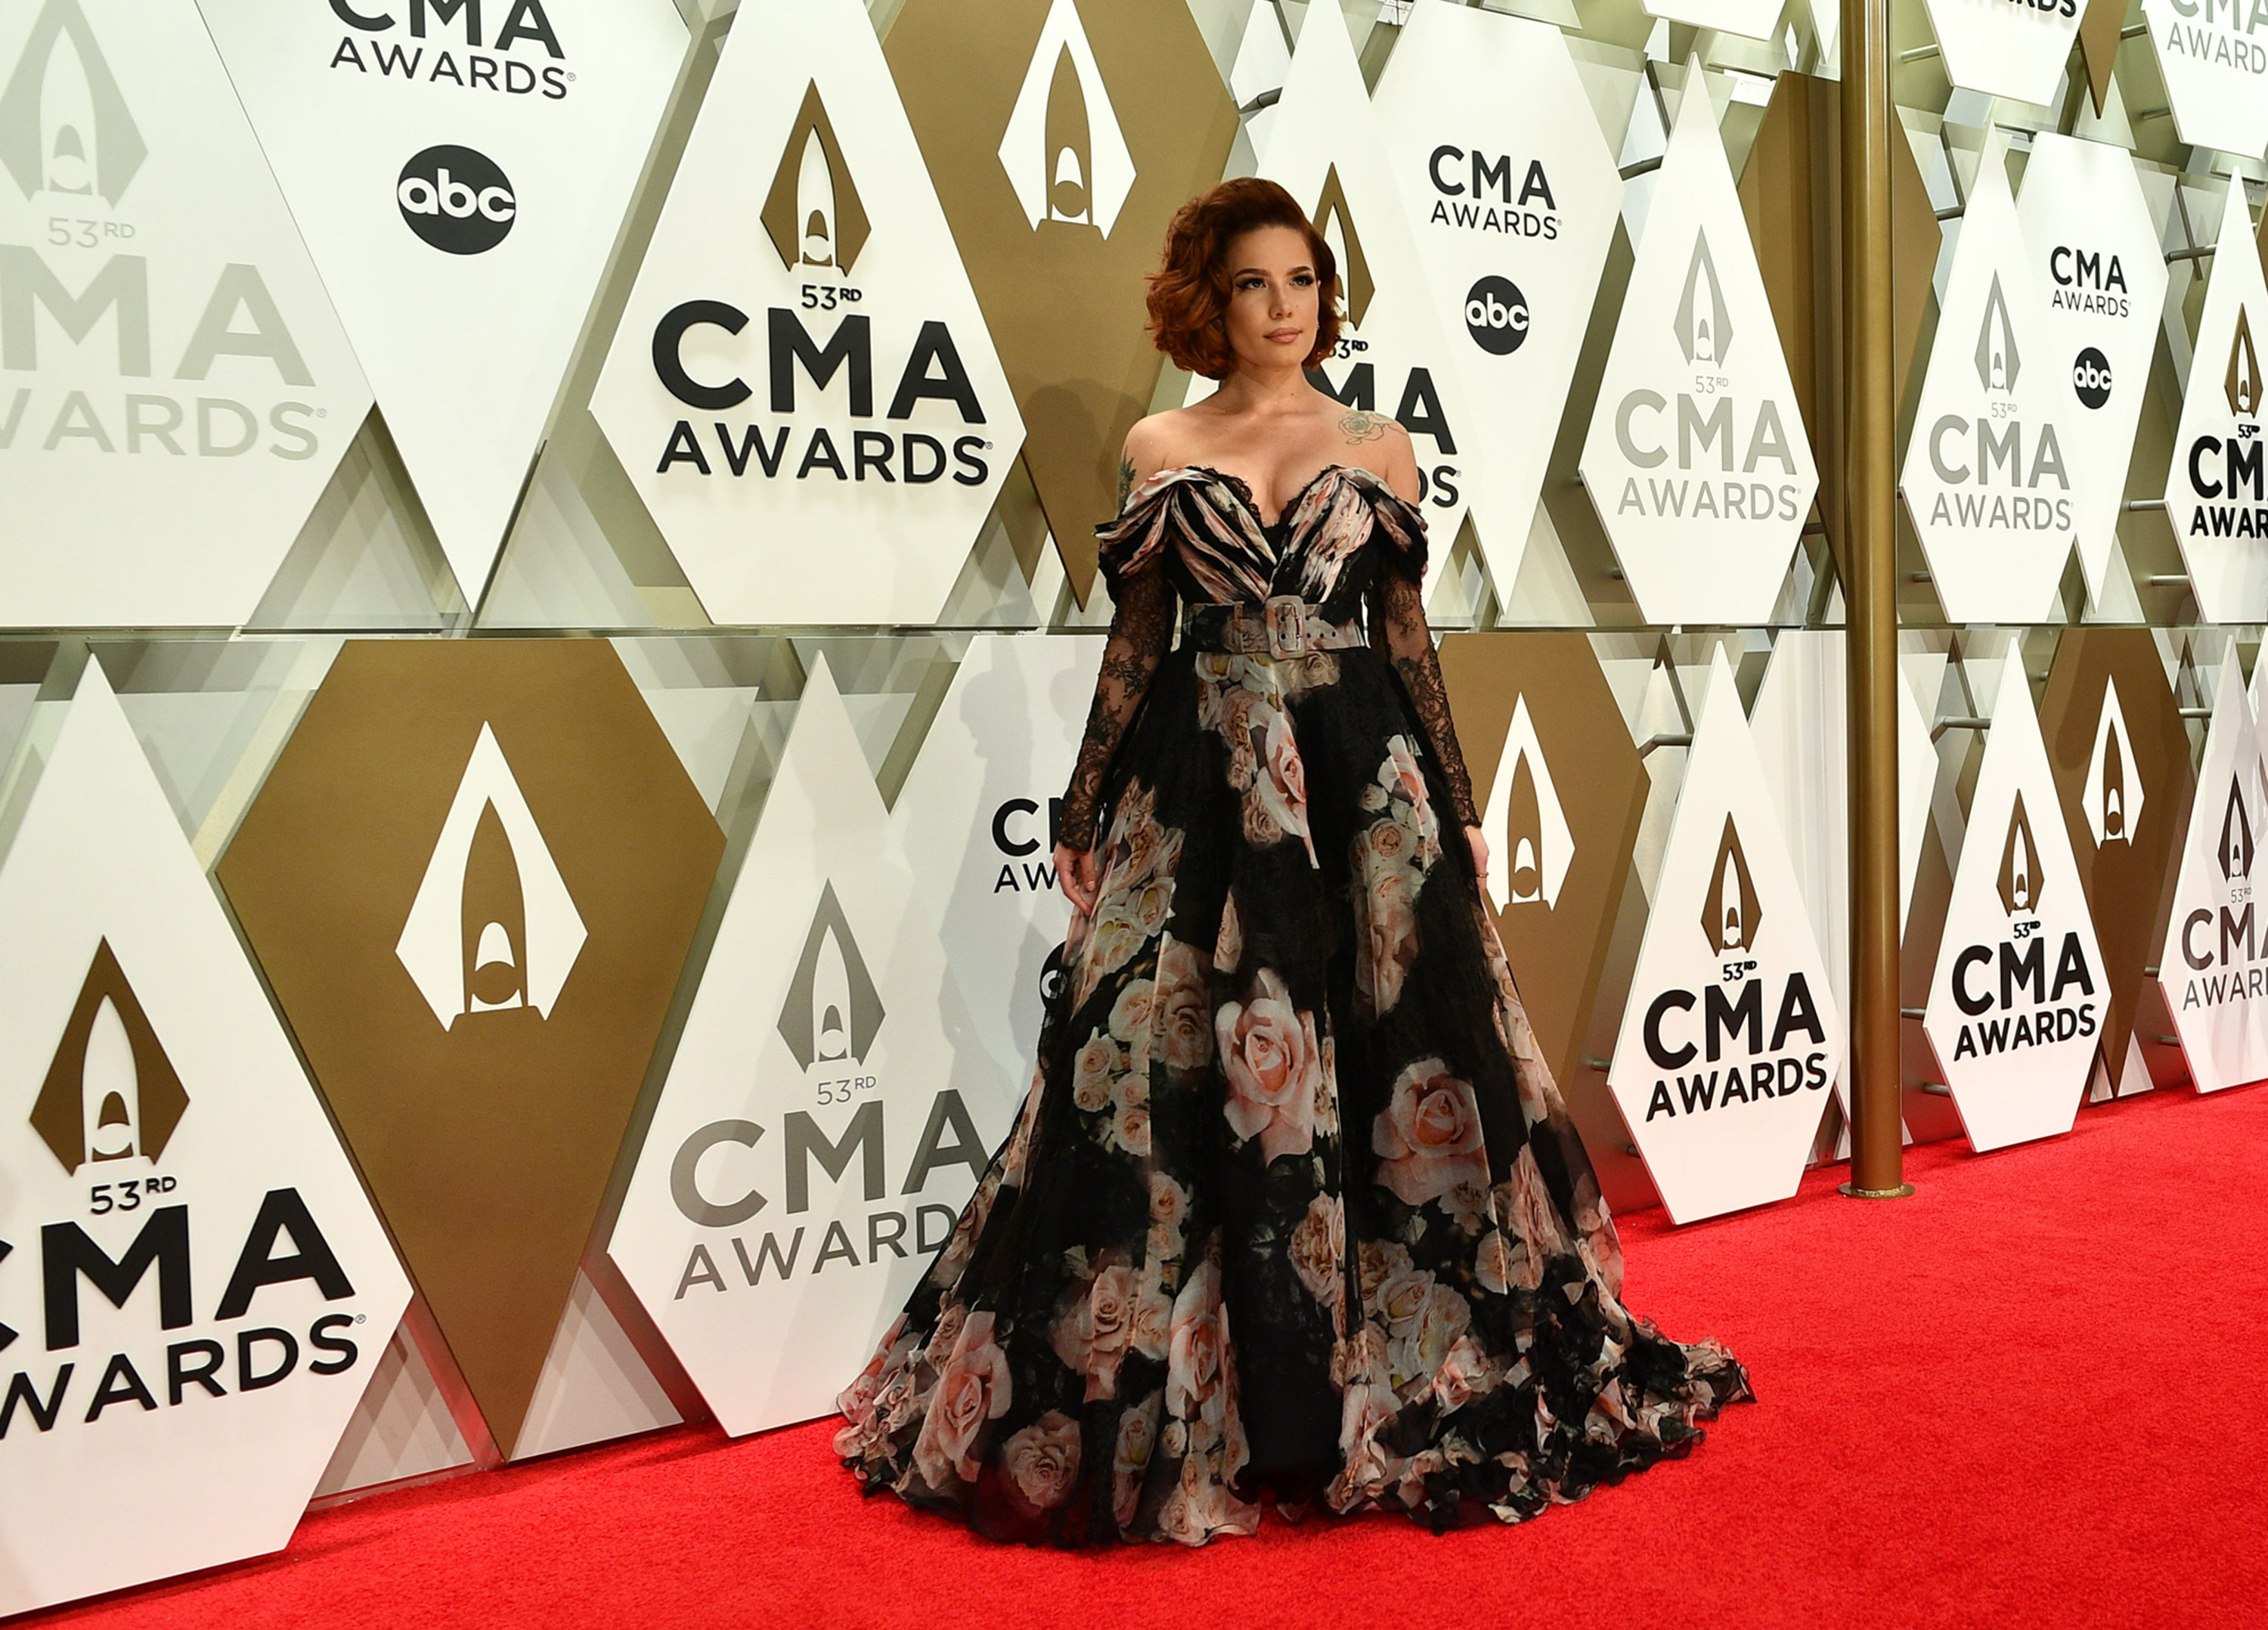 Halsey posing on the red carpet in an off-the-shoulder gown at the 53rd CMA Awards